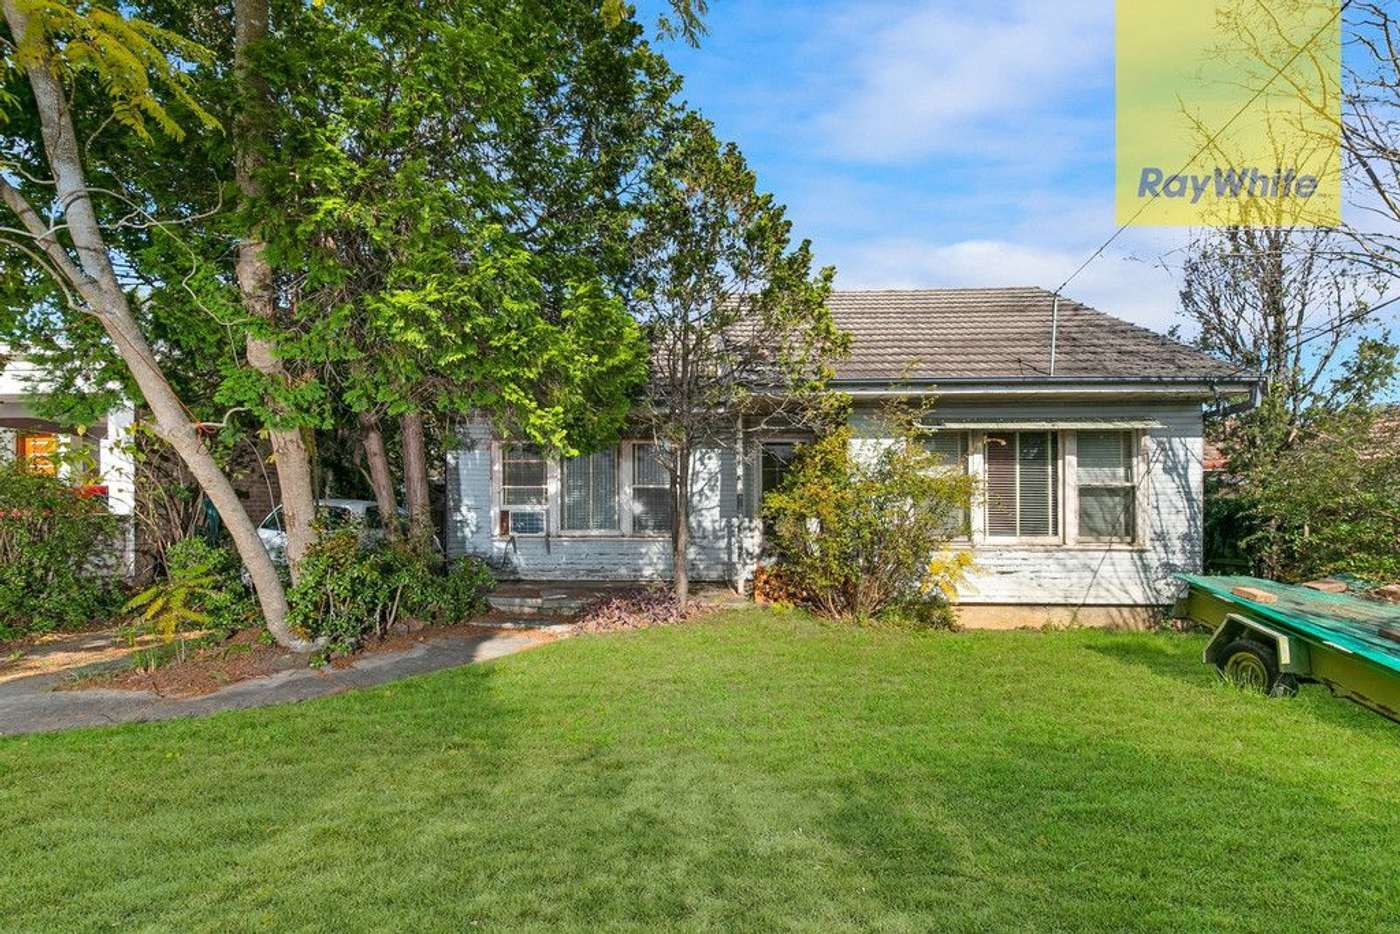 Main view of Homely house listing, 72 Bettington Road, Oatlands NSW 2117